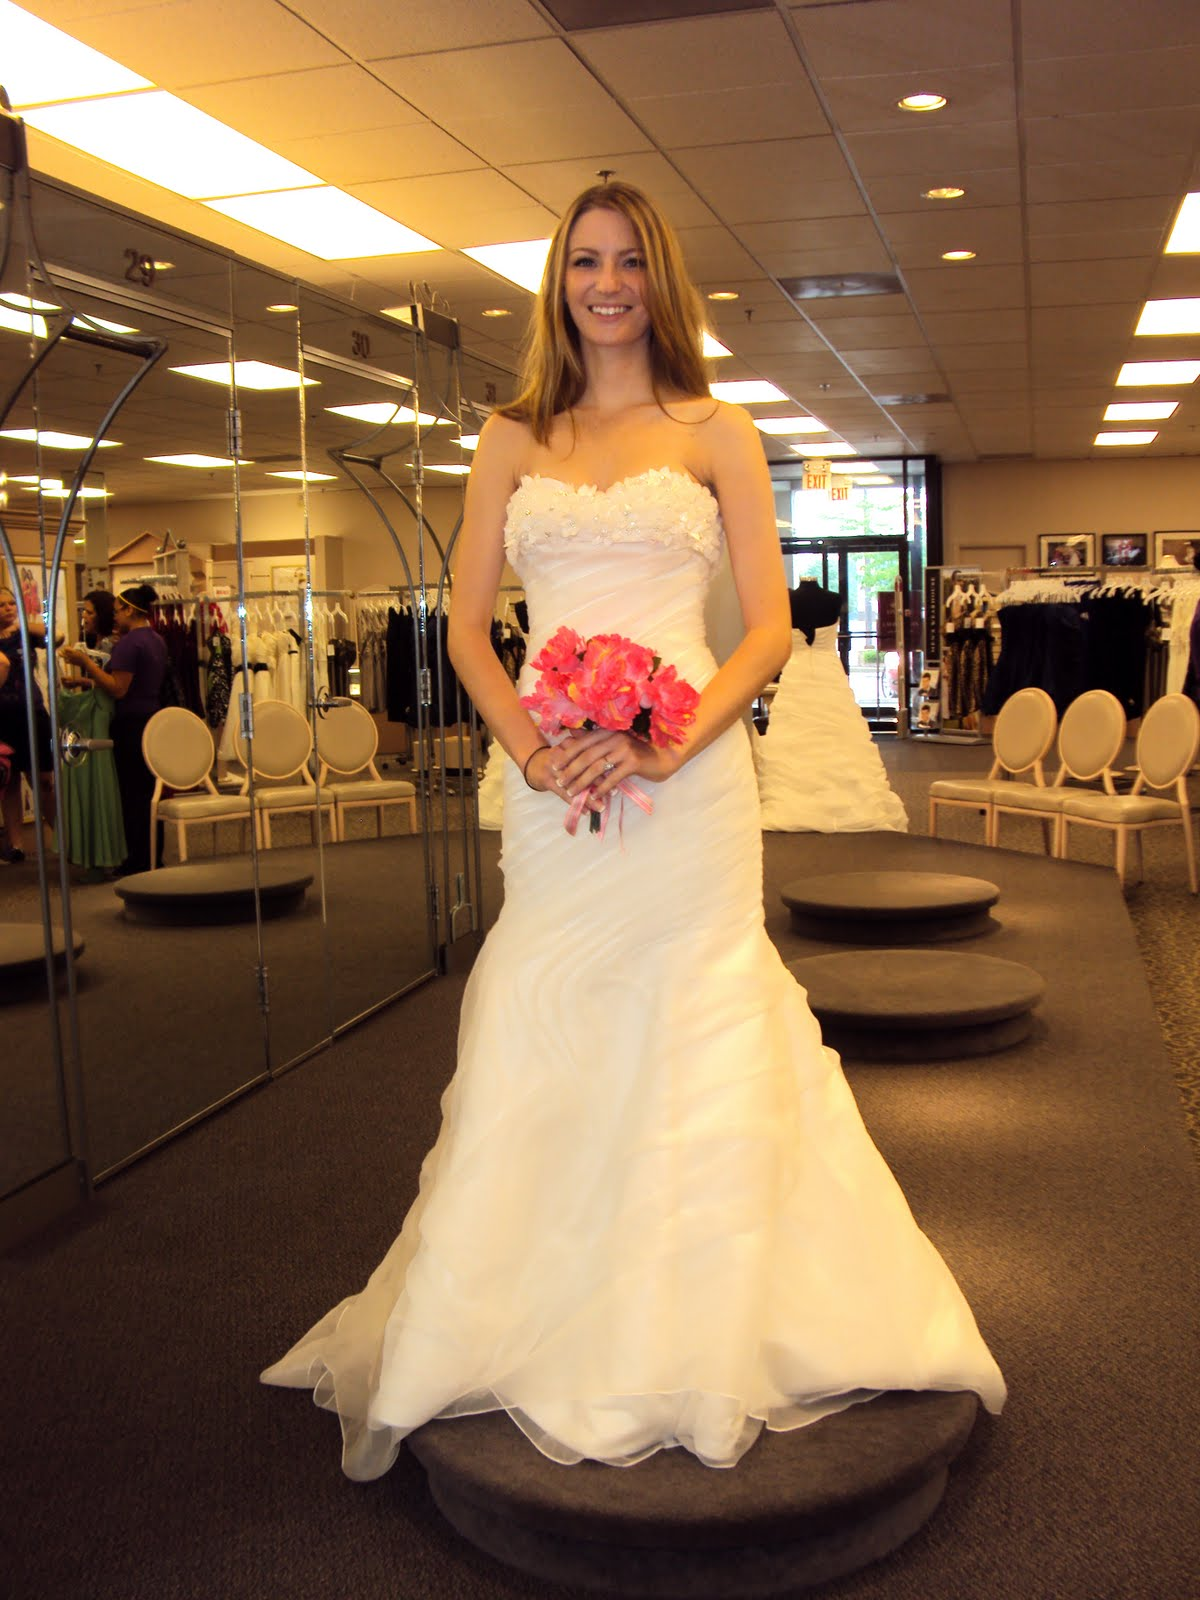 whitedressdistress blogspot galina wedding dresses But now I have to figure out what on earth James will wear Since my dress is probably on the dressier end of the beach wedding dress scale